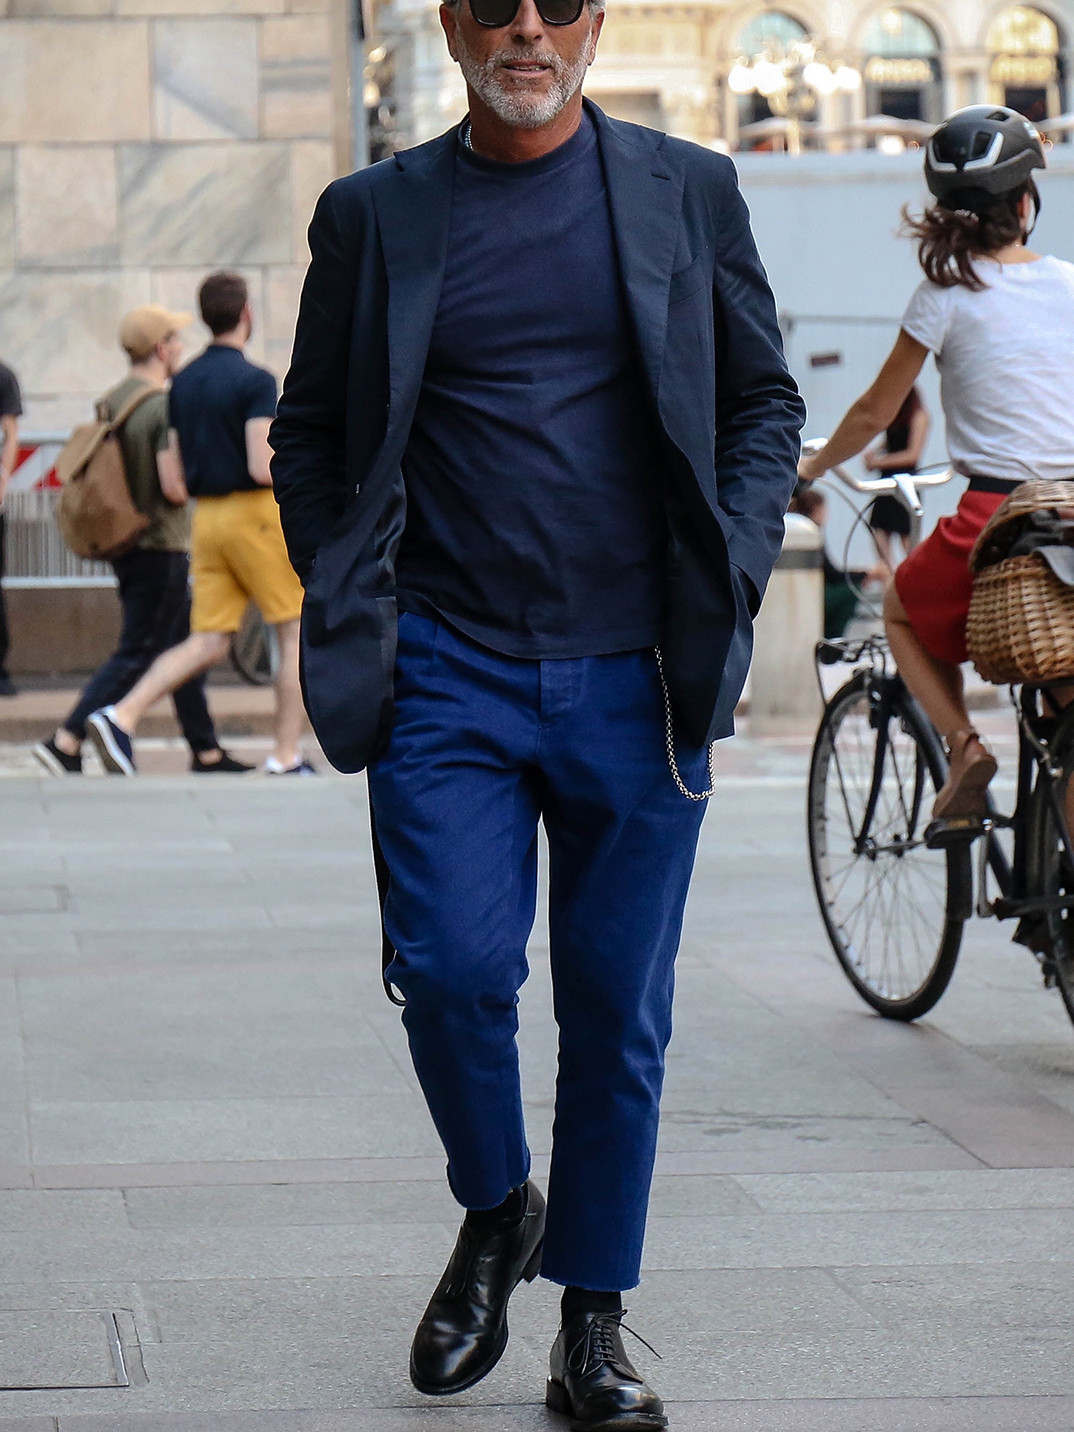 Men's outfit idea for 2021 with navy unstructured blazer, navy plain crew neck t-shirt, blue chinos, black thick framed sunglasses, black oxford / derby shoes. Suitable for spring and autumn.